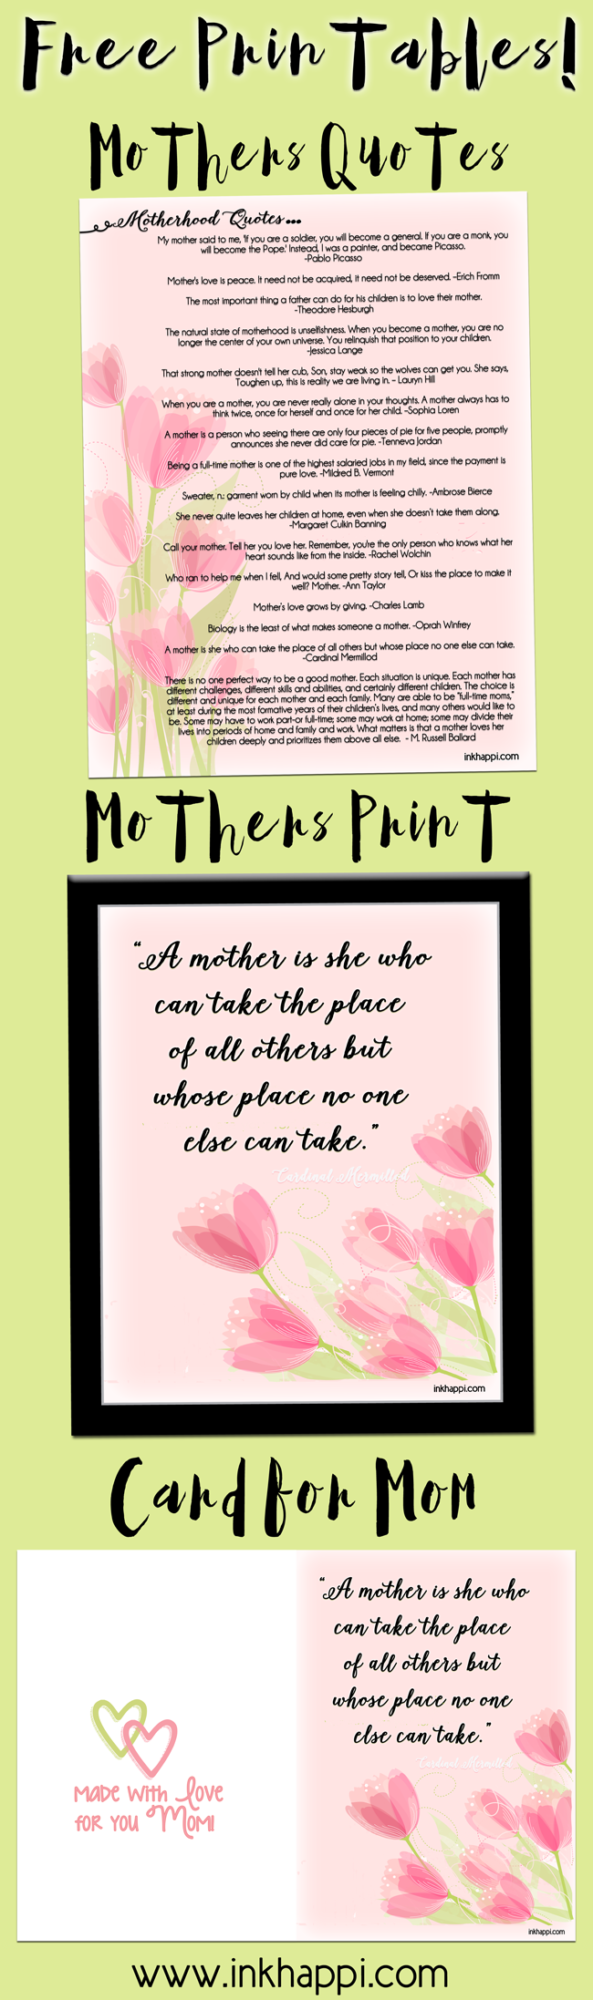 Motherhood quotes. Free printables! Great for Mothers Day. :)